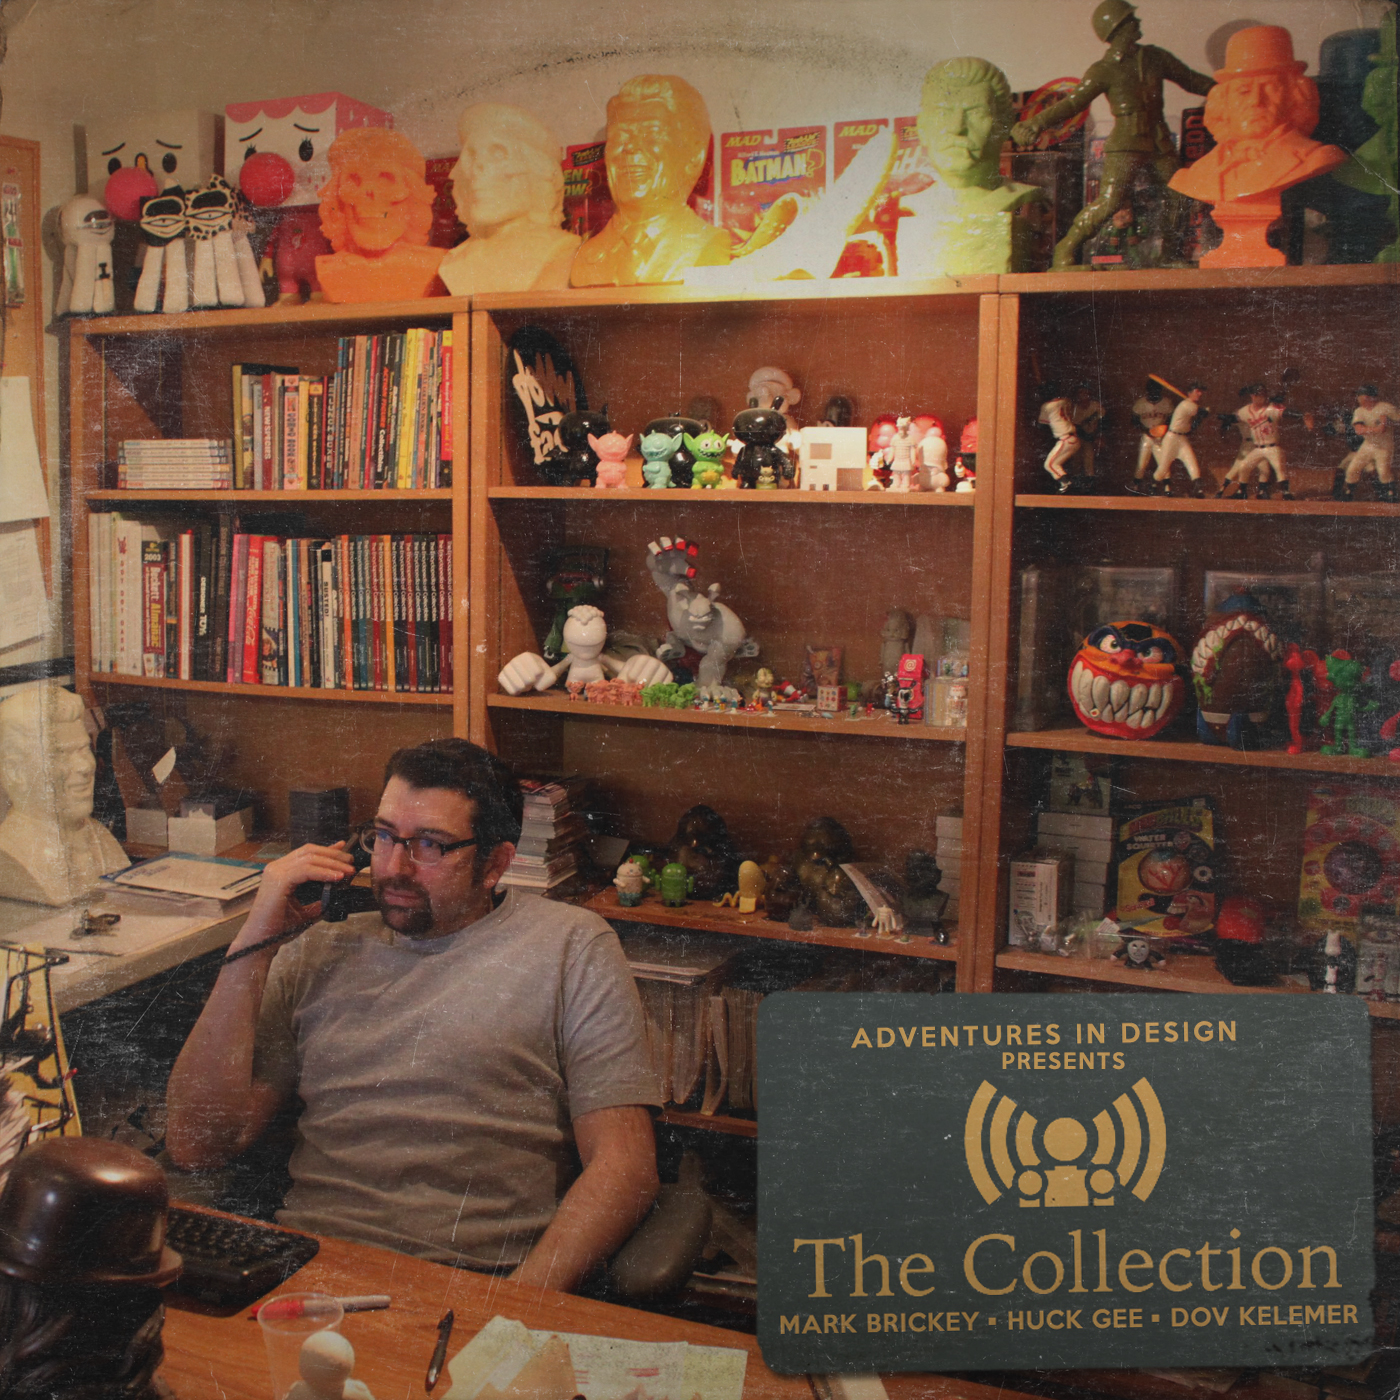 """Episode 327 """"The Collection with Huck Gee Volume II: Dov Kelemer of DKE"""""""